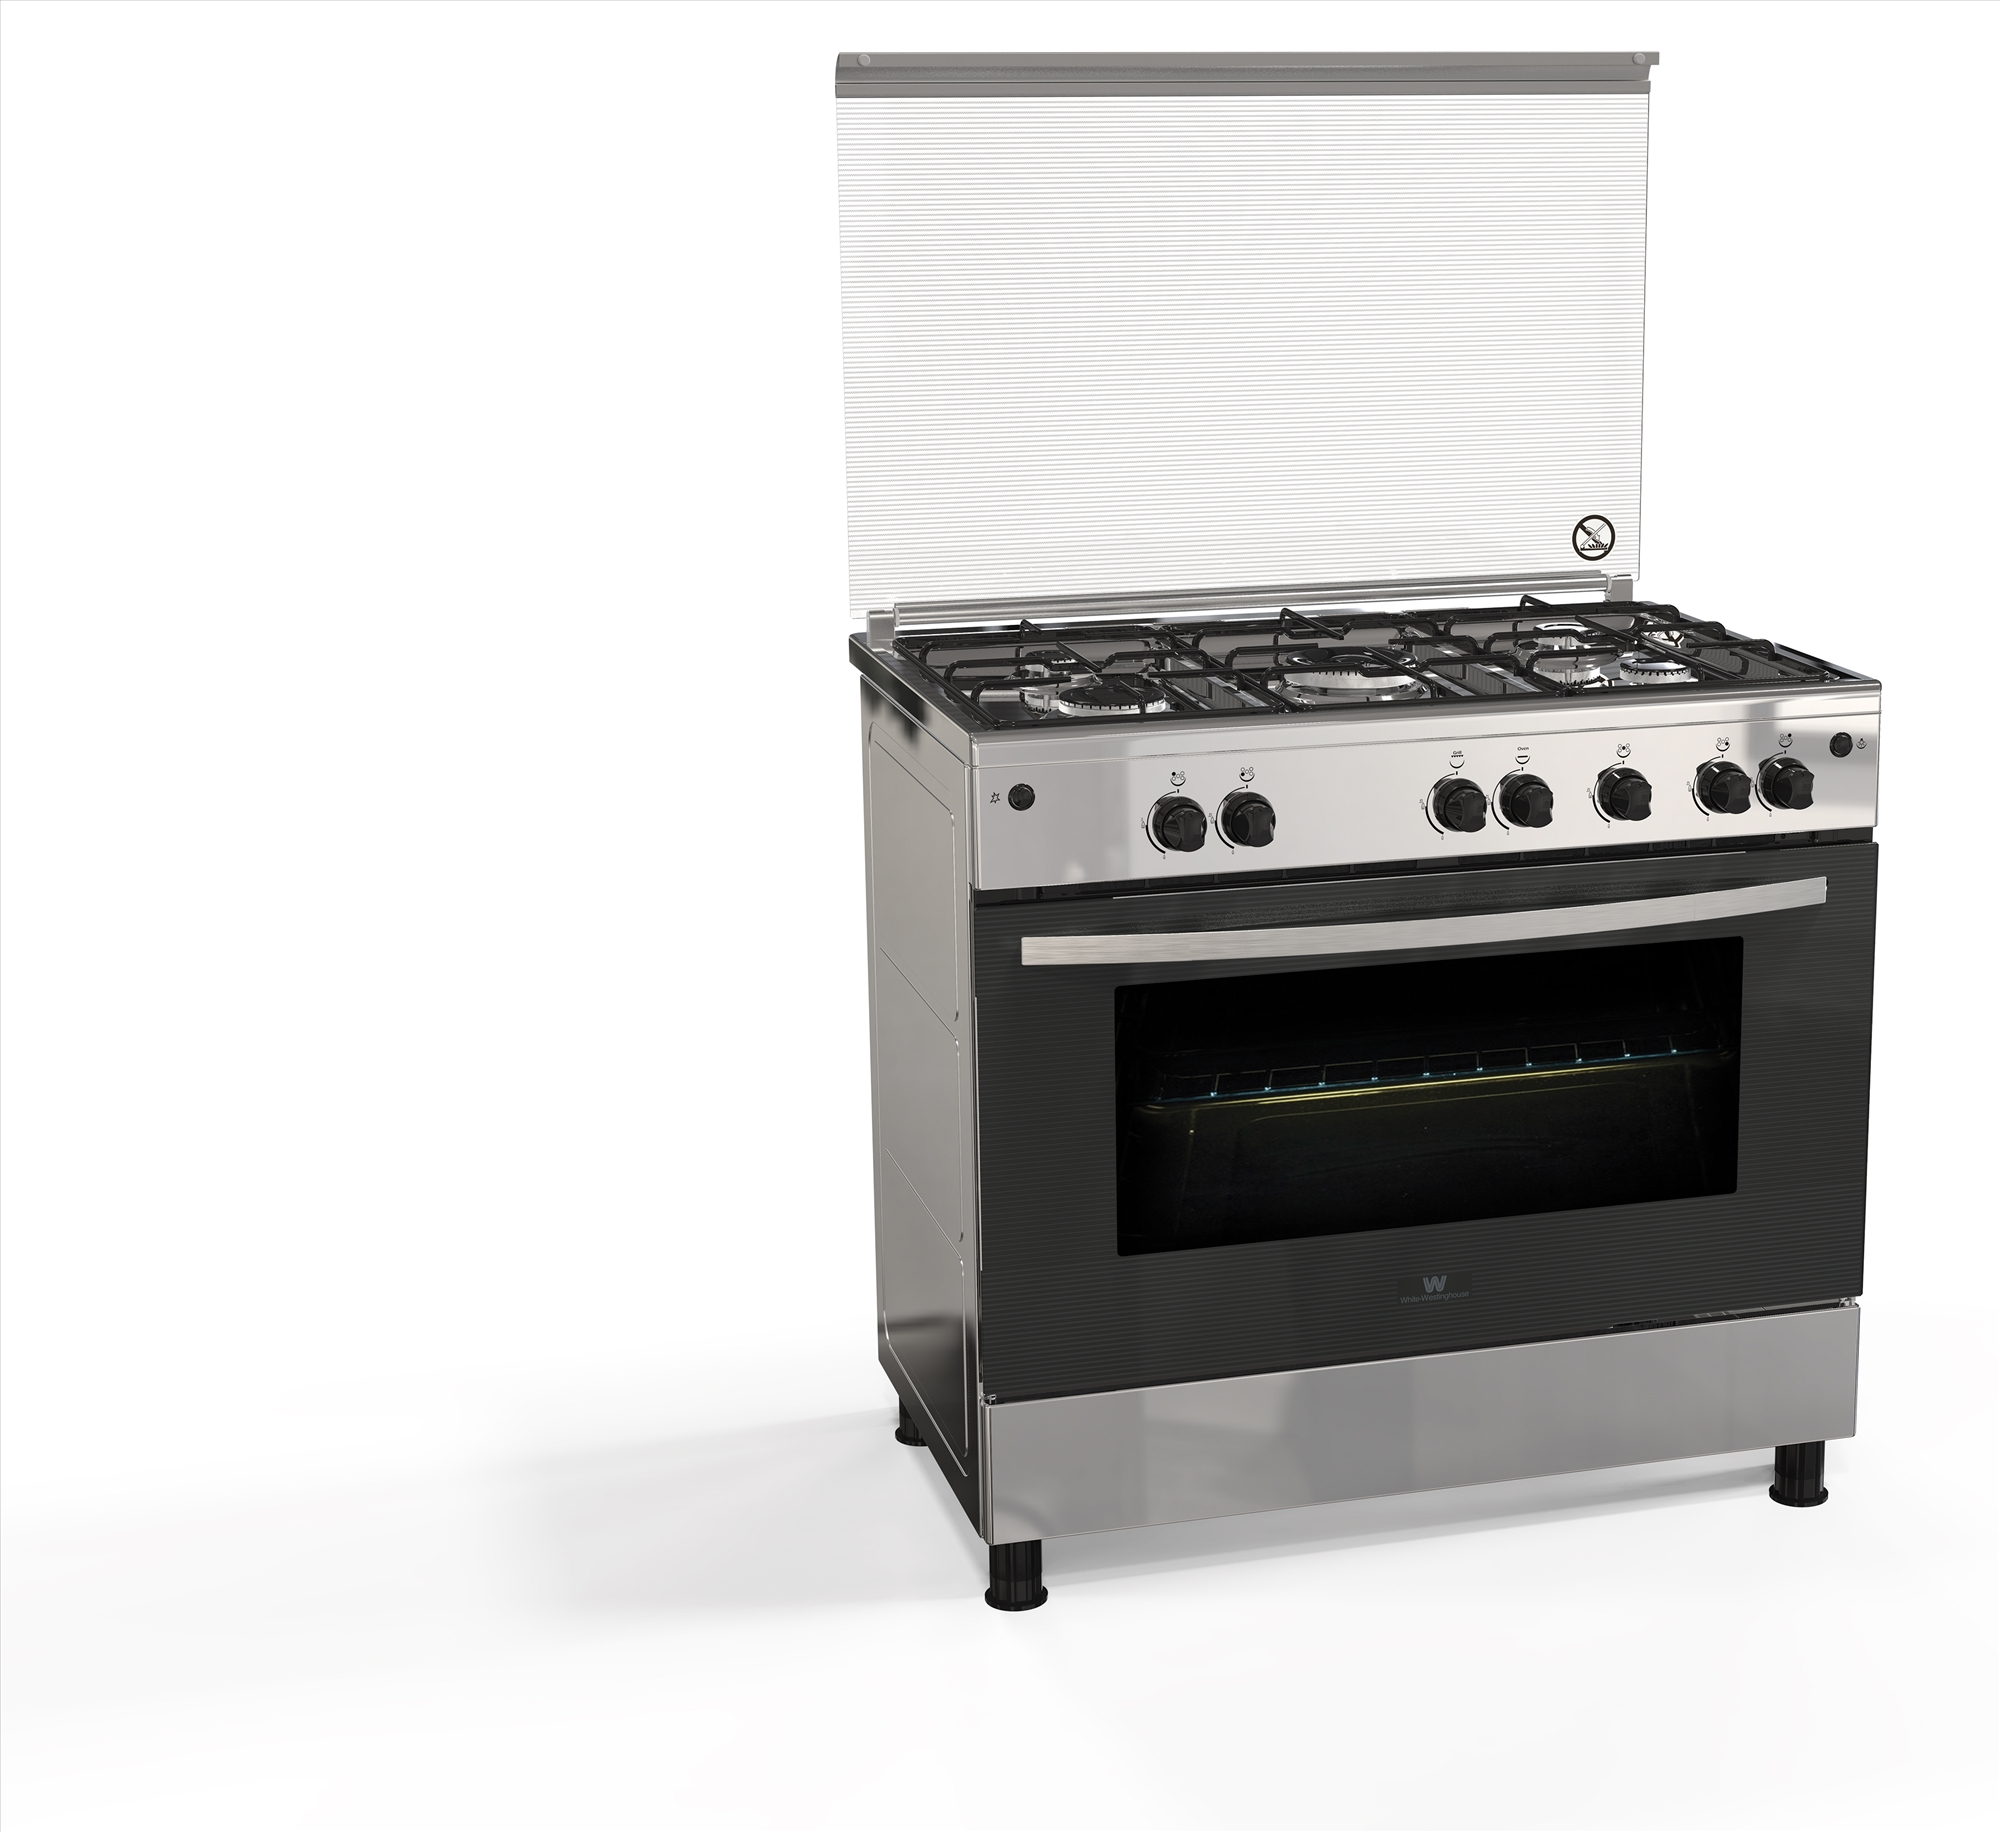 electrolux 90cm oven. Oven Net Capacity (liters): 97 Liters, Cooktop Width (cm): 90 Electrolux 90cm